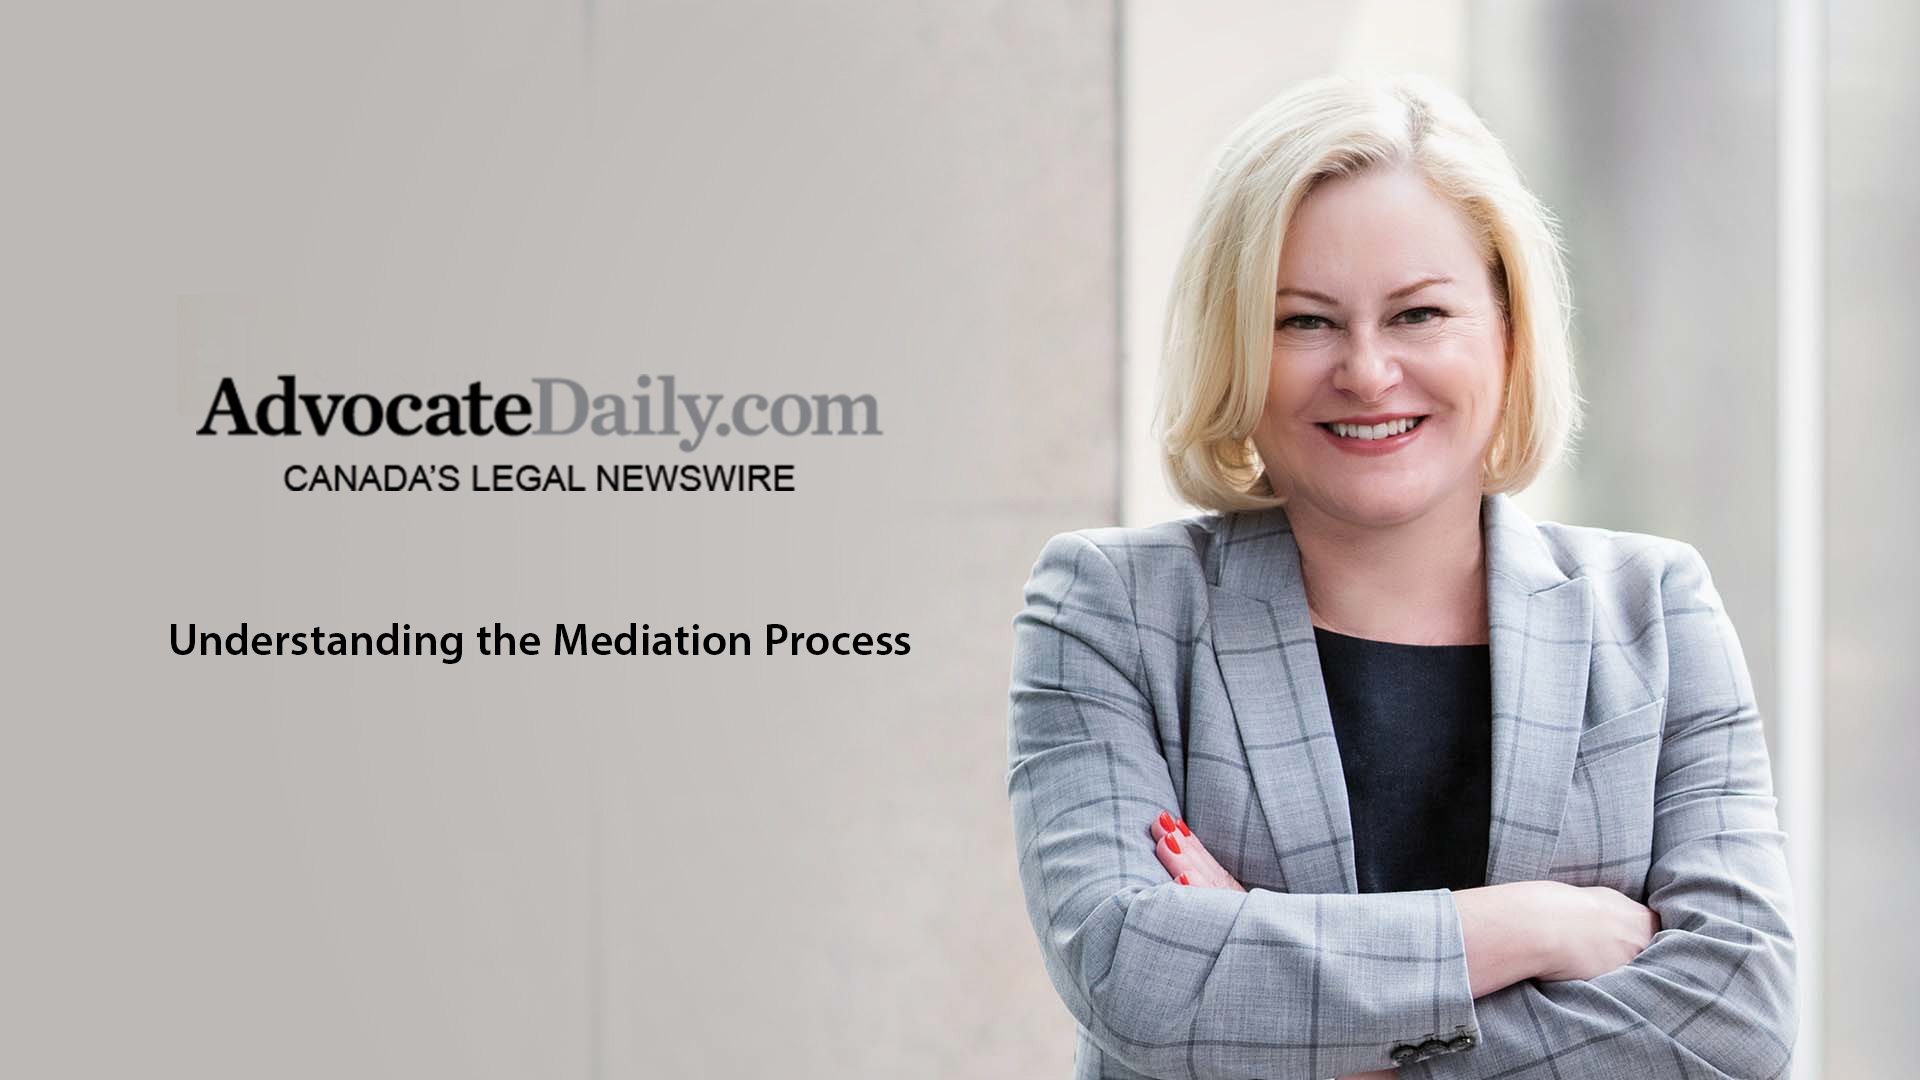 """Kelly D. Jordan featured on Advocate Daily: """"Understanding the mediation process is important""""."""